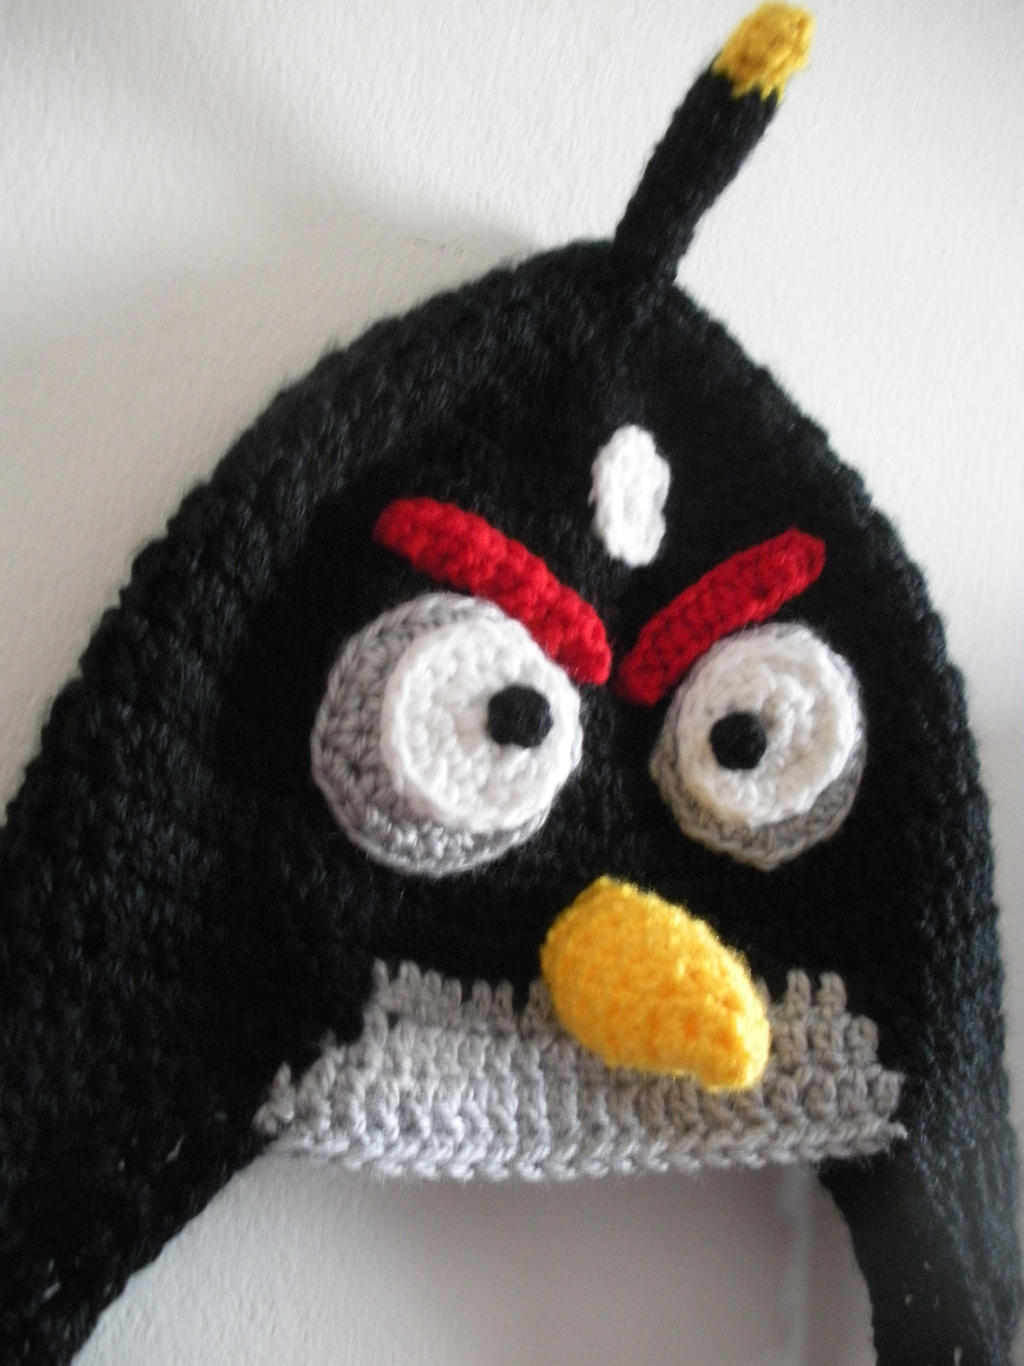 Crochet Hat Pattern Angry Bird : Angry Birds Hat - Black Bird Hat by melibusla on DeviantArt